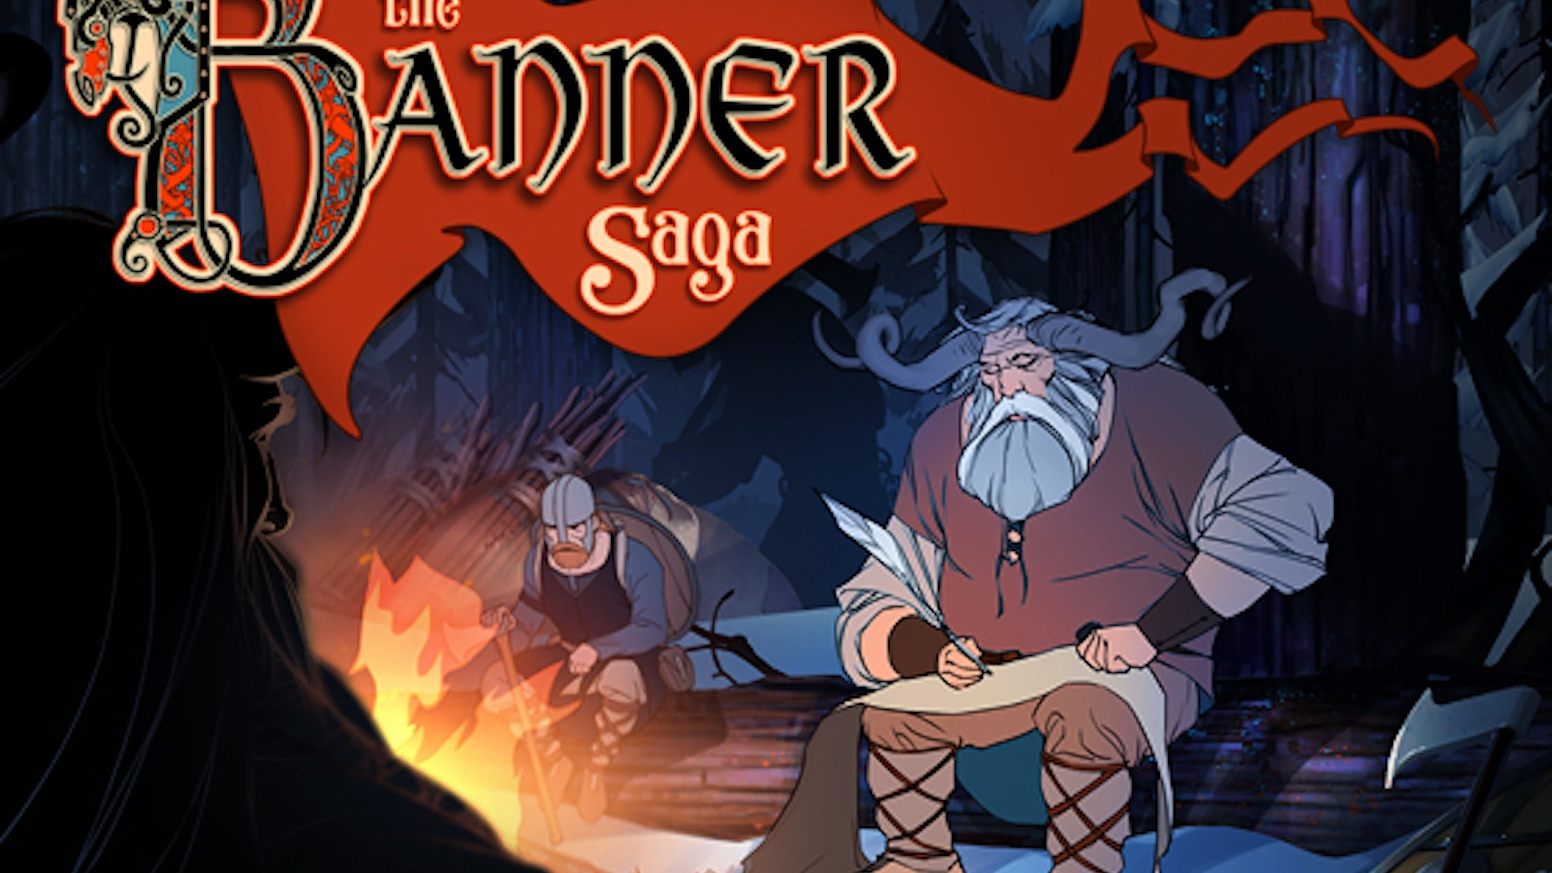 A mature, story-driven, turn-based strategy game steeped in viking culture, by three game industry veterans.